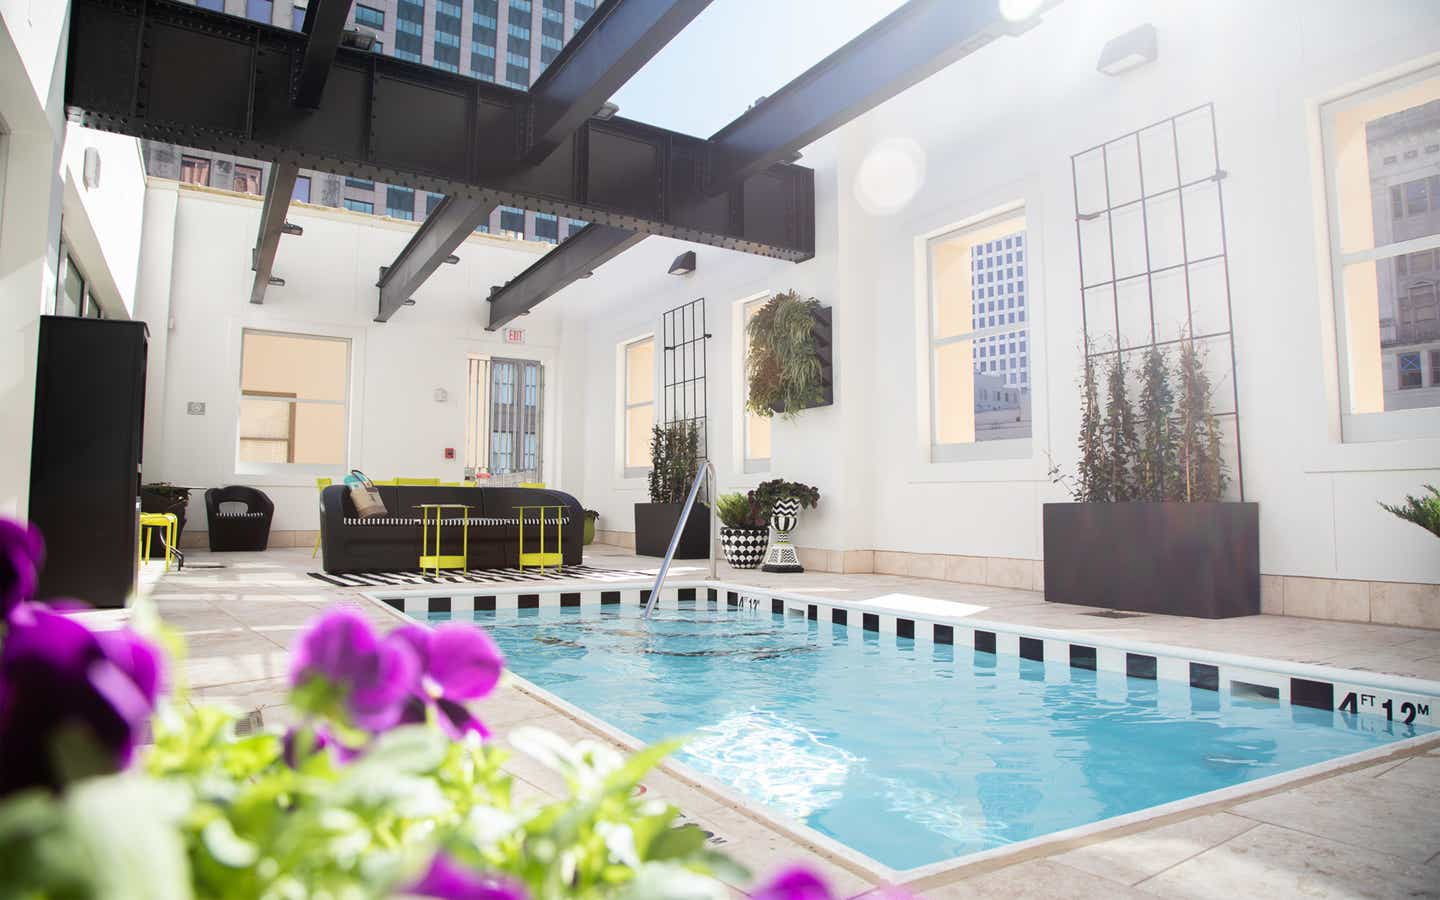 Rooftop dipping pool at New Orleans Resort in Louisiana.